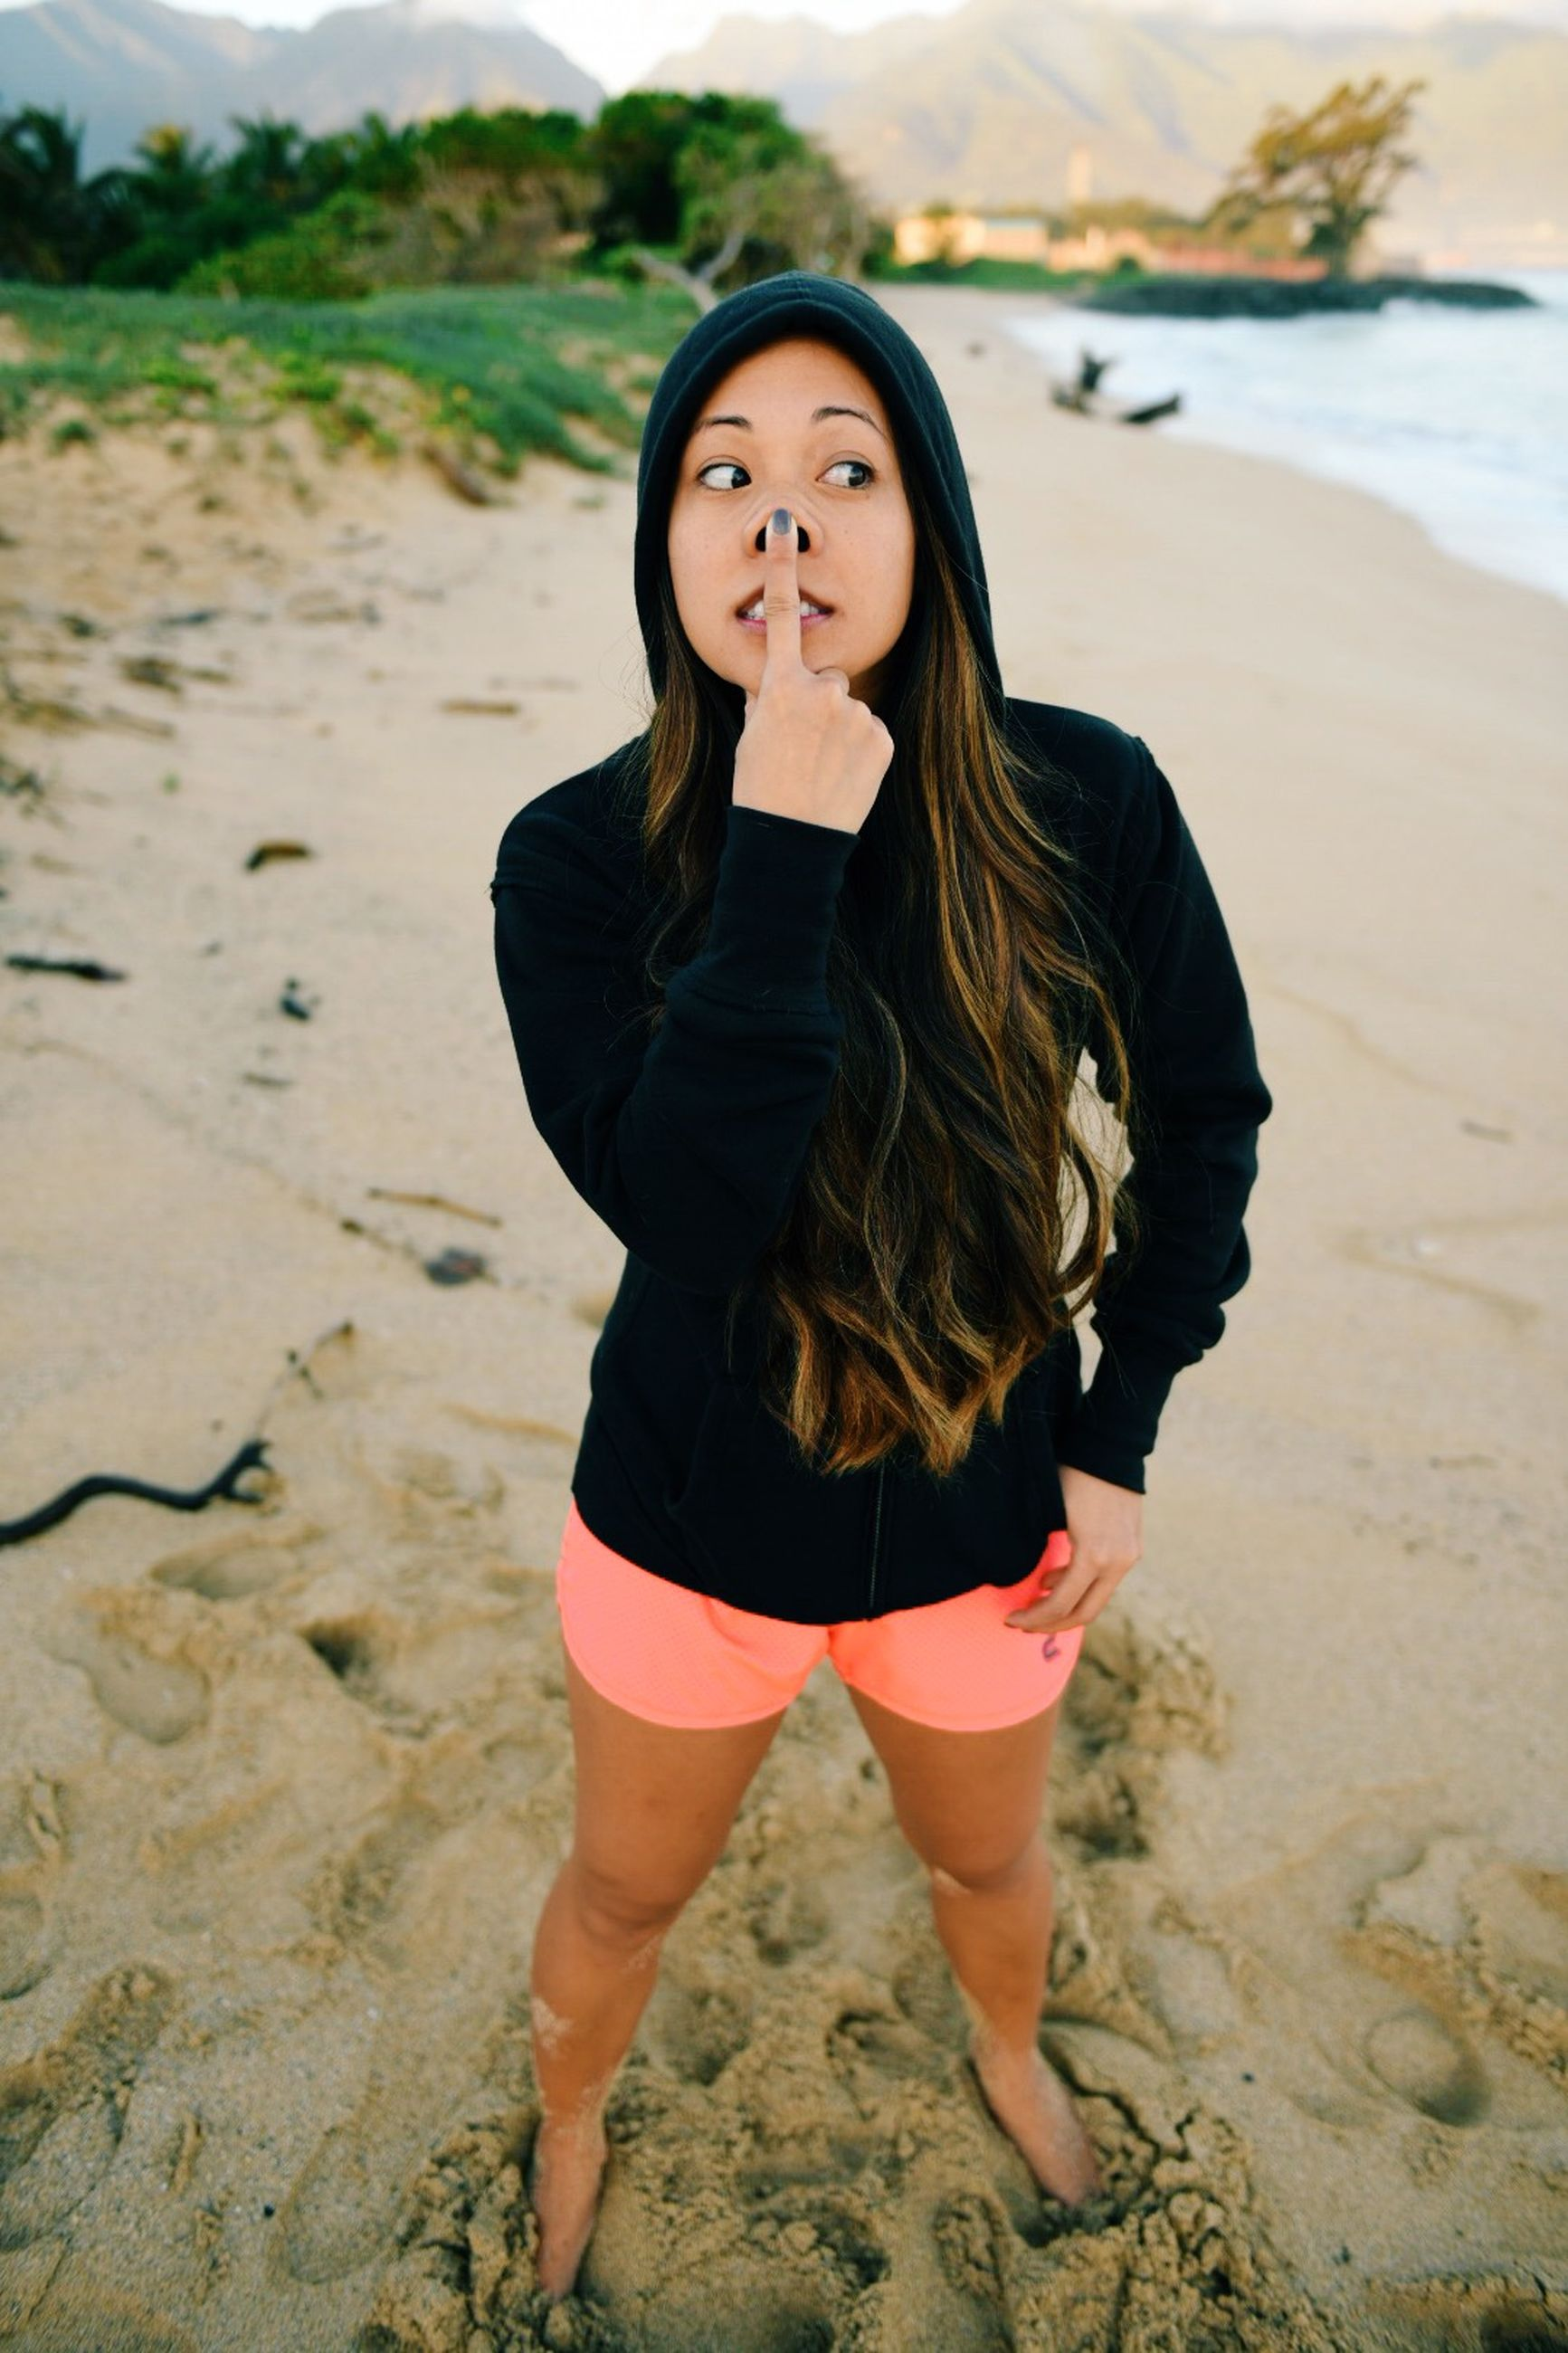 young adult, beach, lifestyles, young women, person, standing, leisure activity, casual clothing, portrait, water, looking at camera, long hair, front view, full length, shore, sand, three quarter length